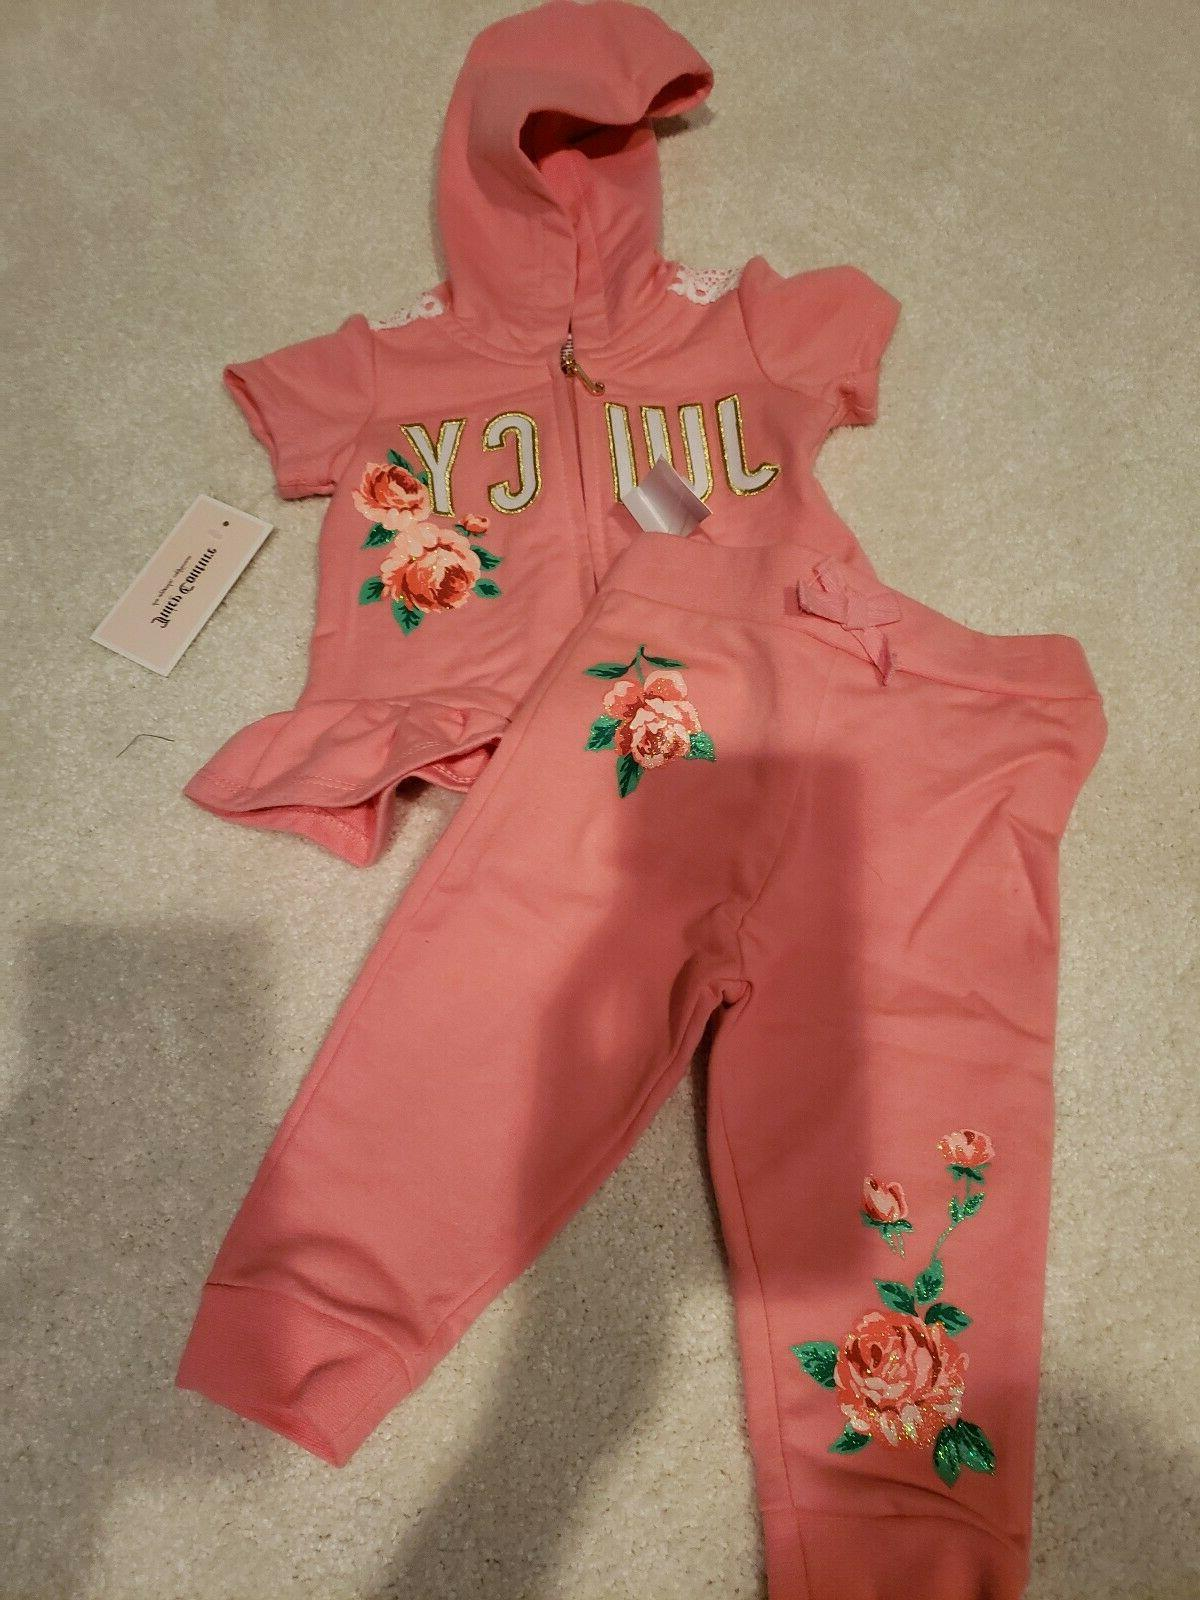 girls clothing outfits size 12 months